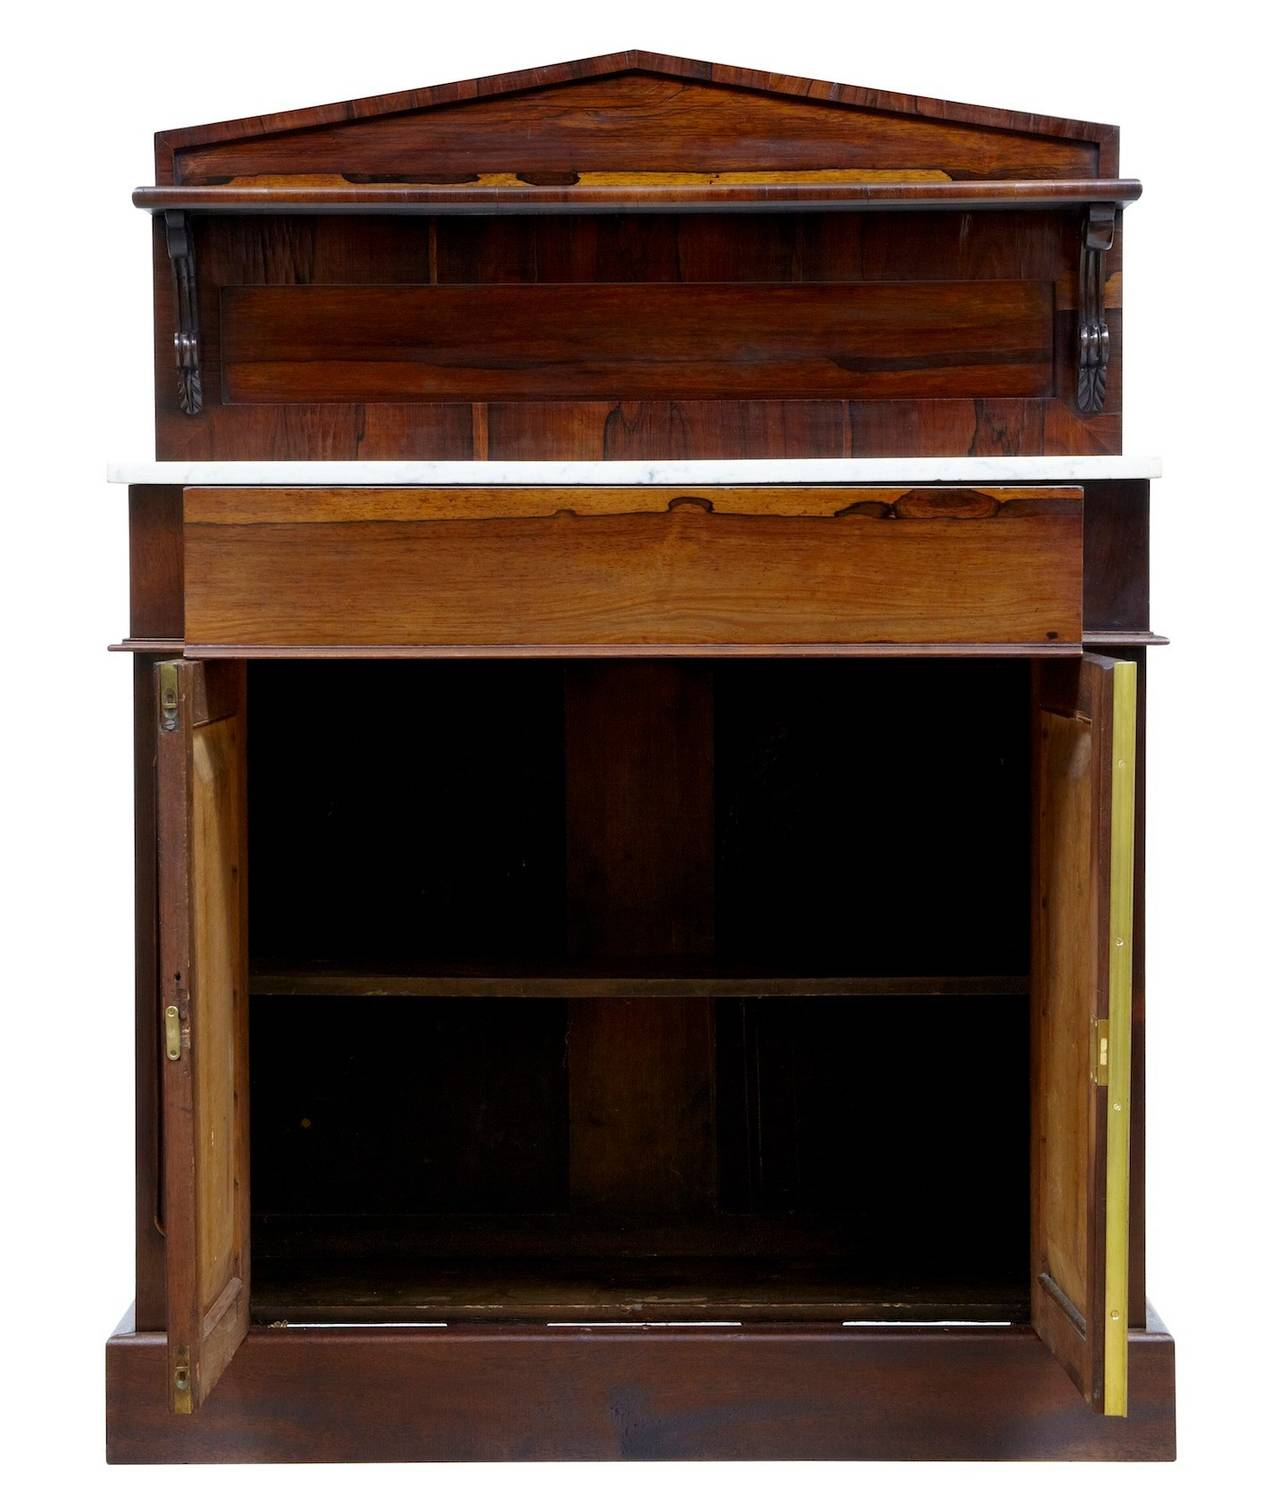 Good quality William IV chiffionier, circa 1830. 